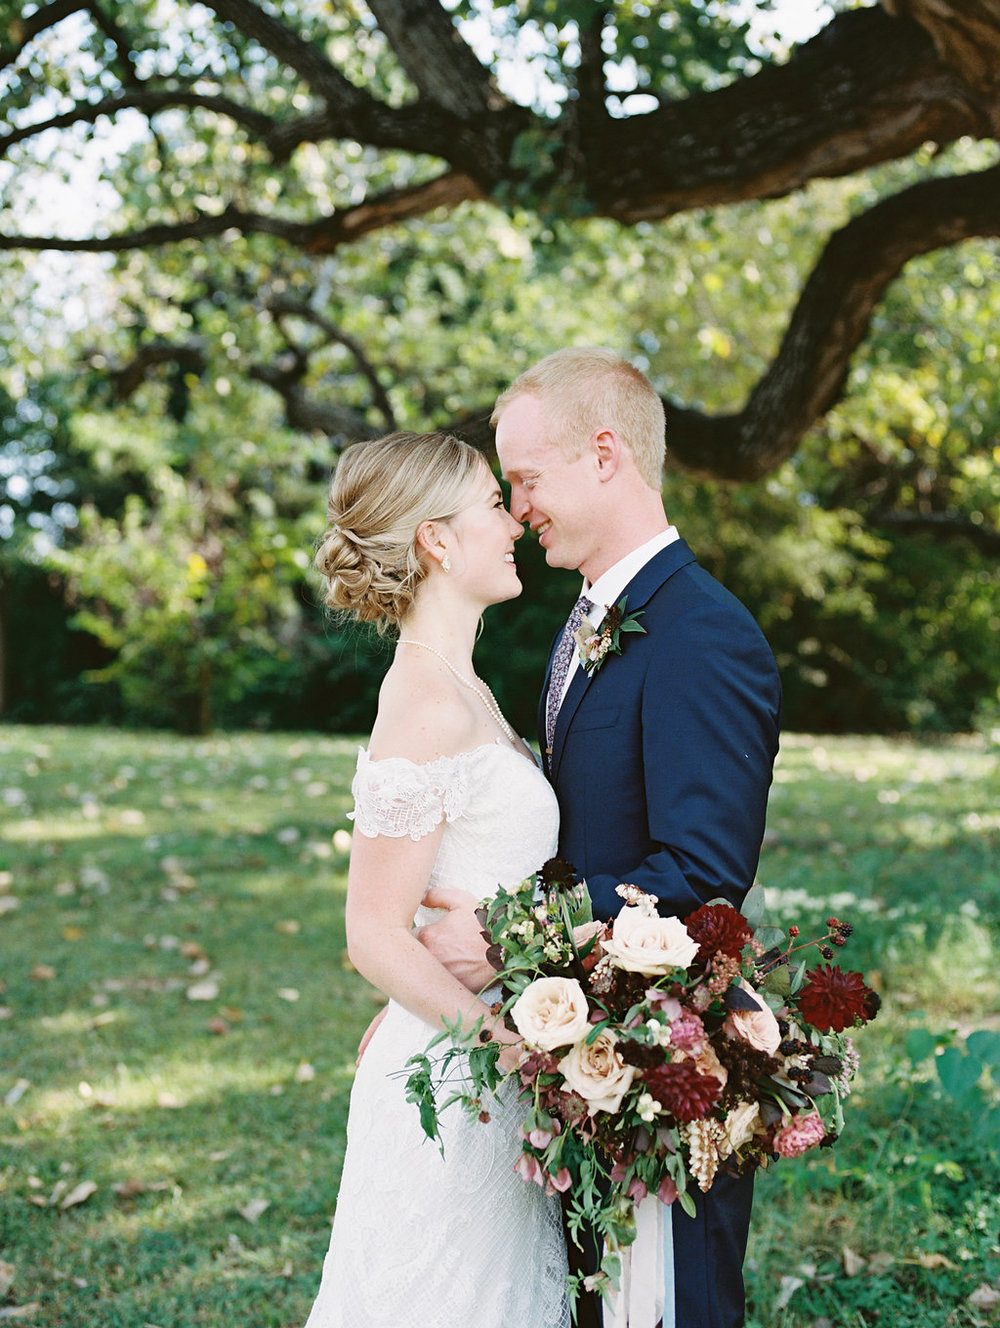 Burgundy and Blush Wedding Flowers - Wedding Florist in Dallas